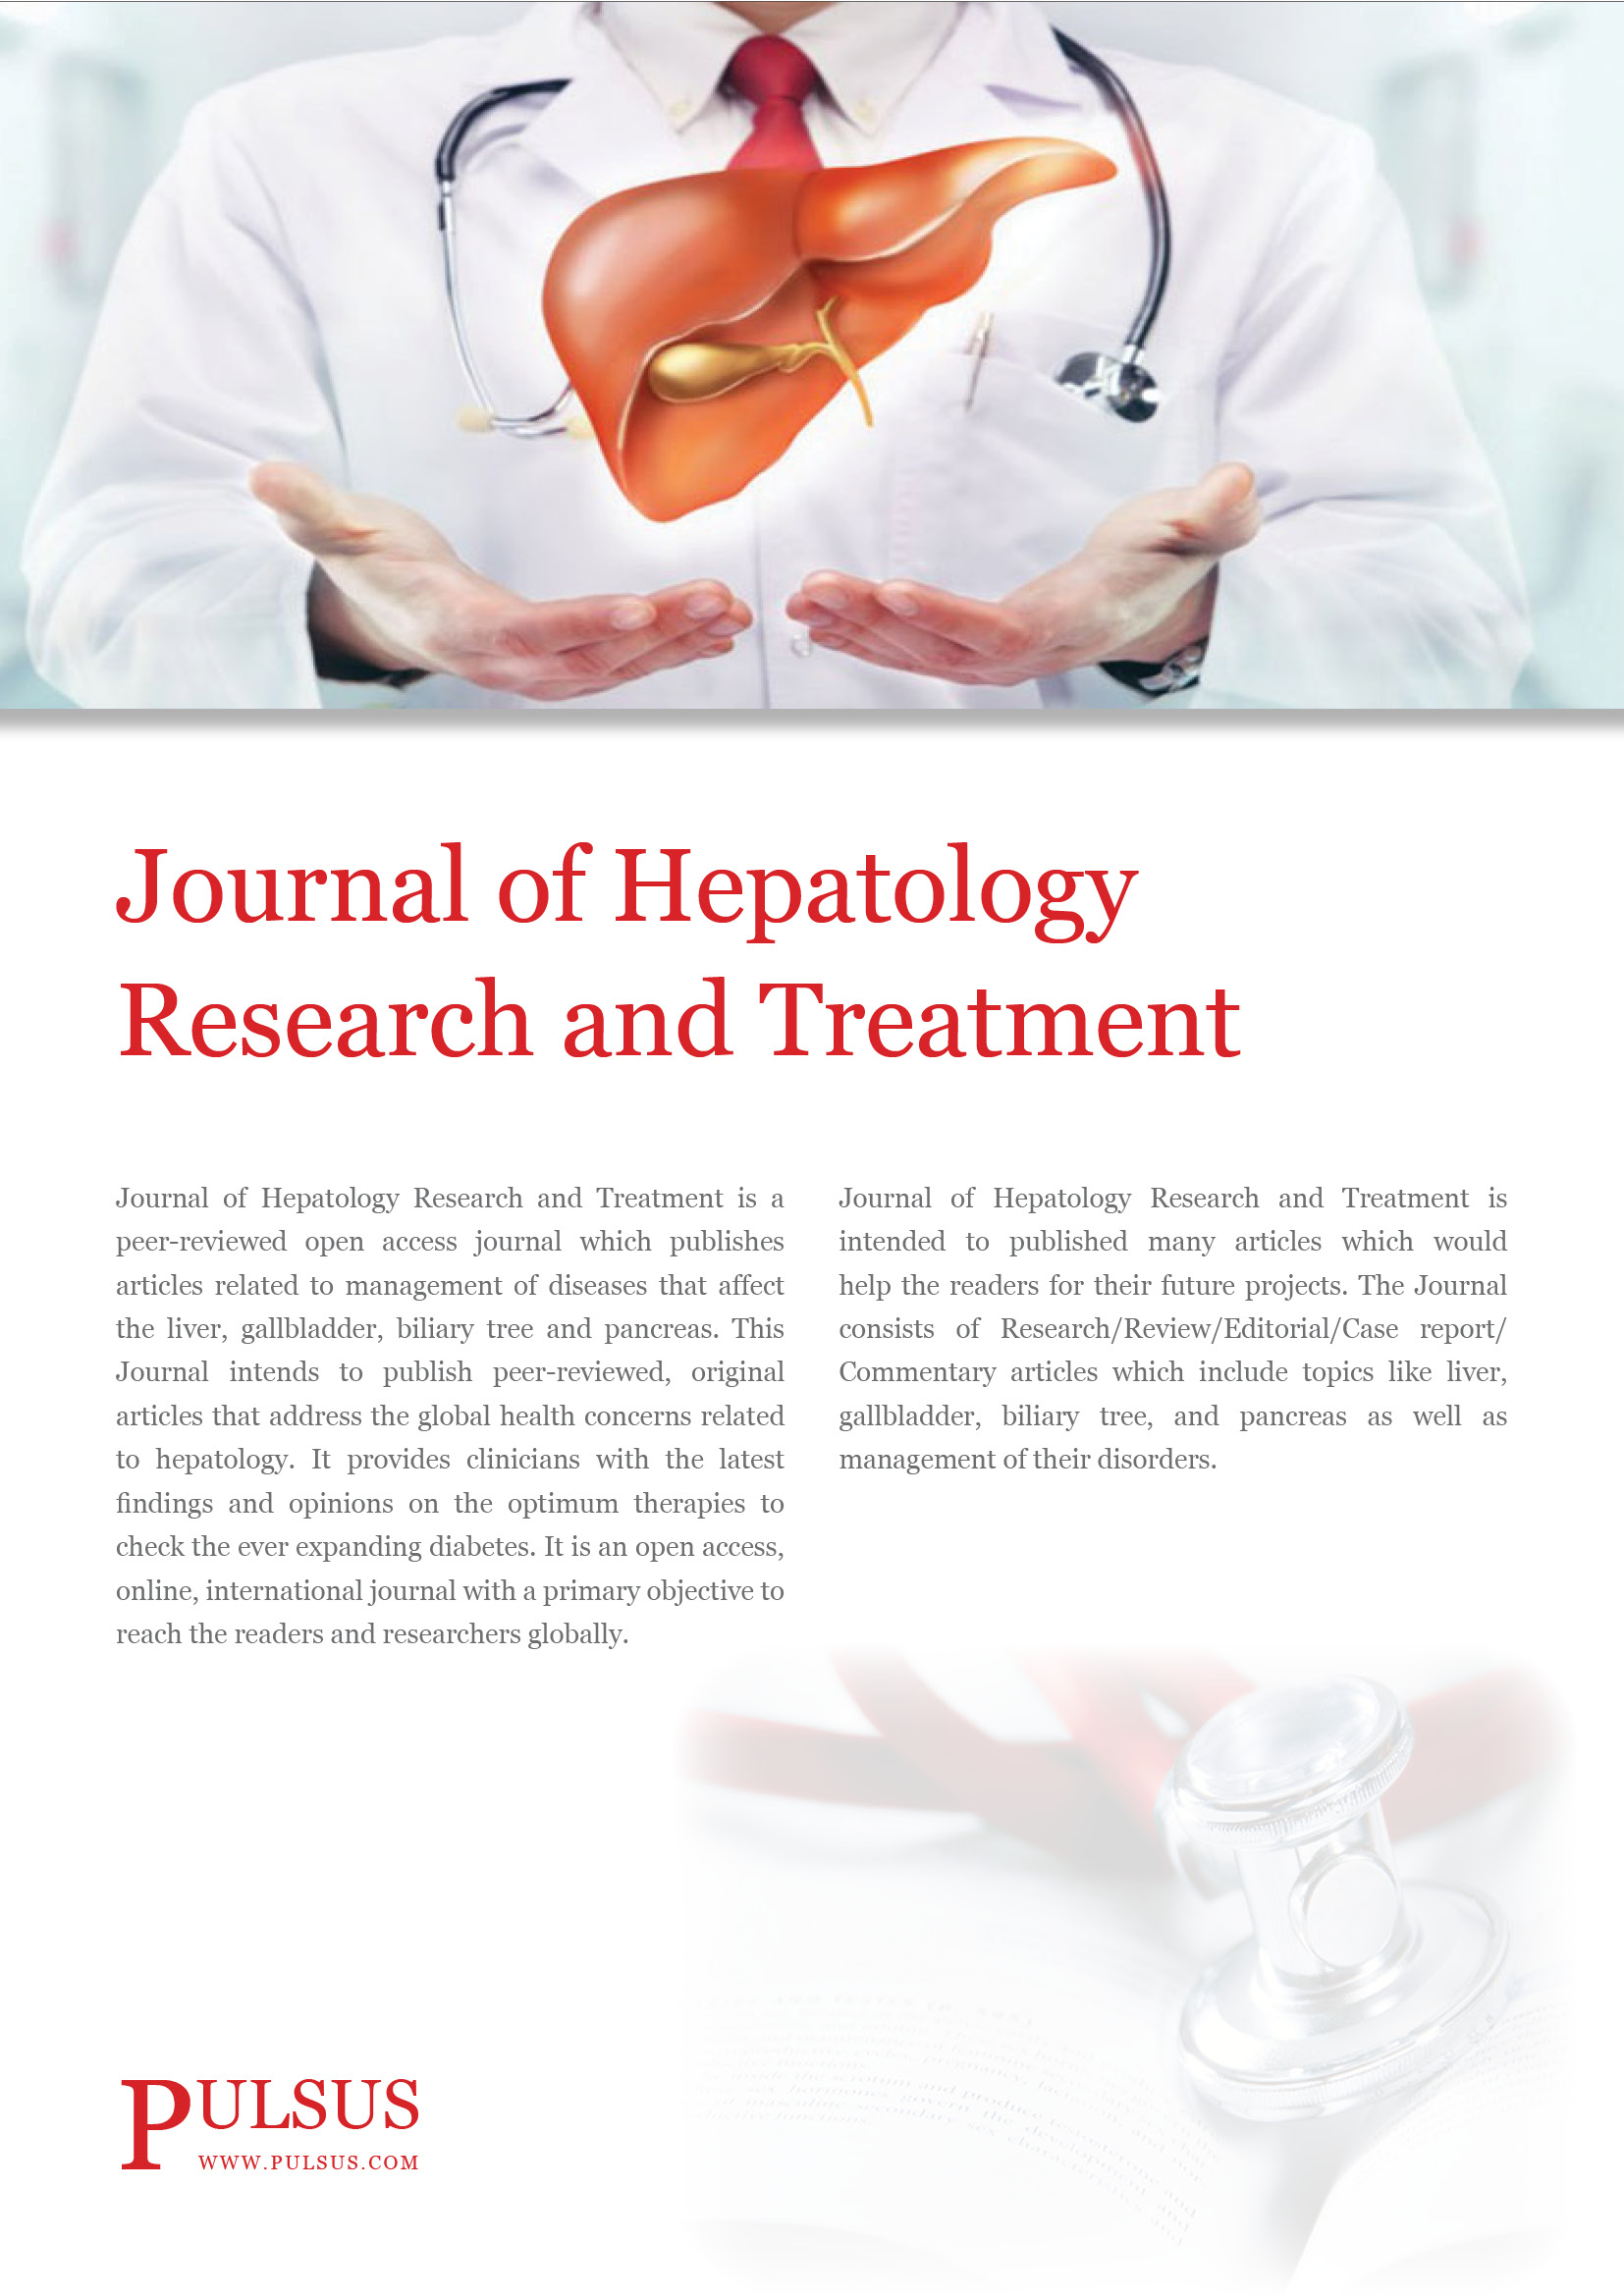 Journal of Hepatology Research and Treatment